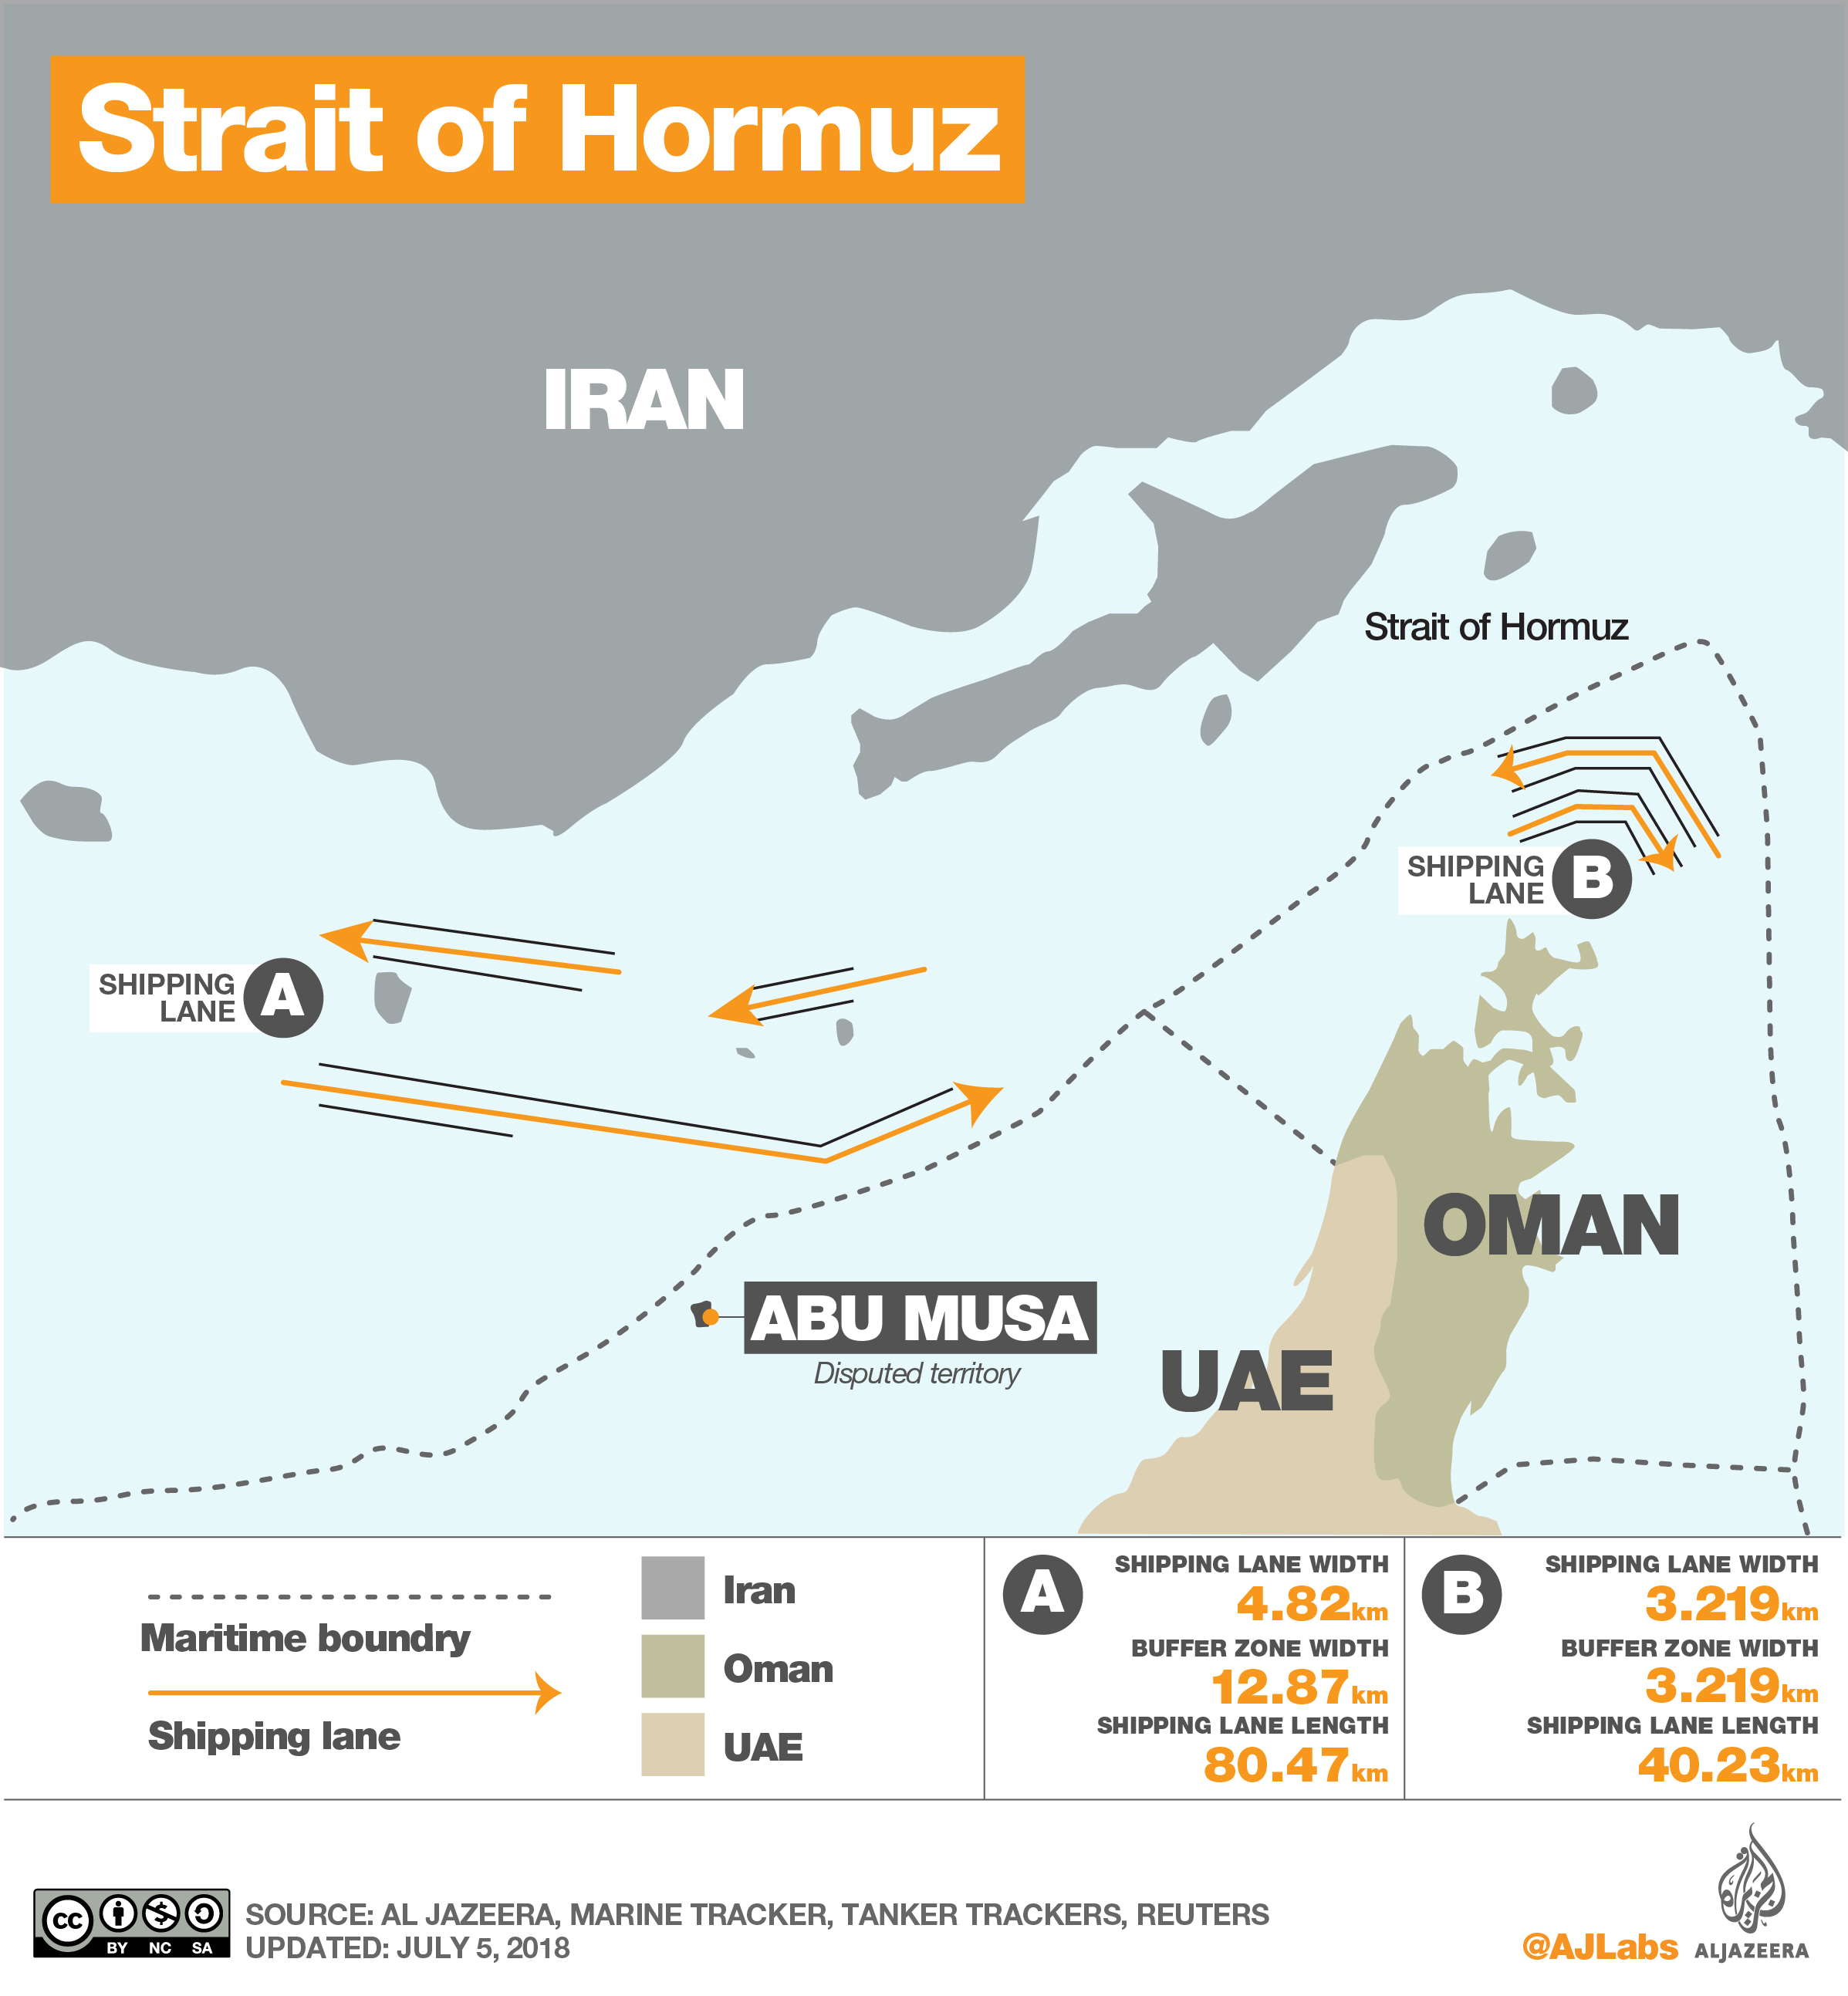 What's at stake if trading at Strait of Hormuz is disrupted